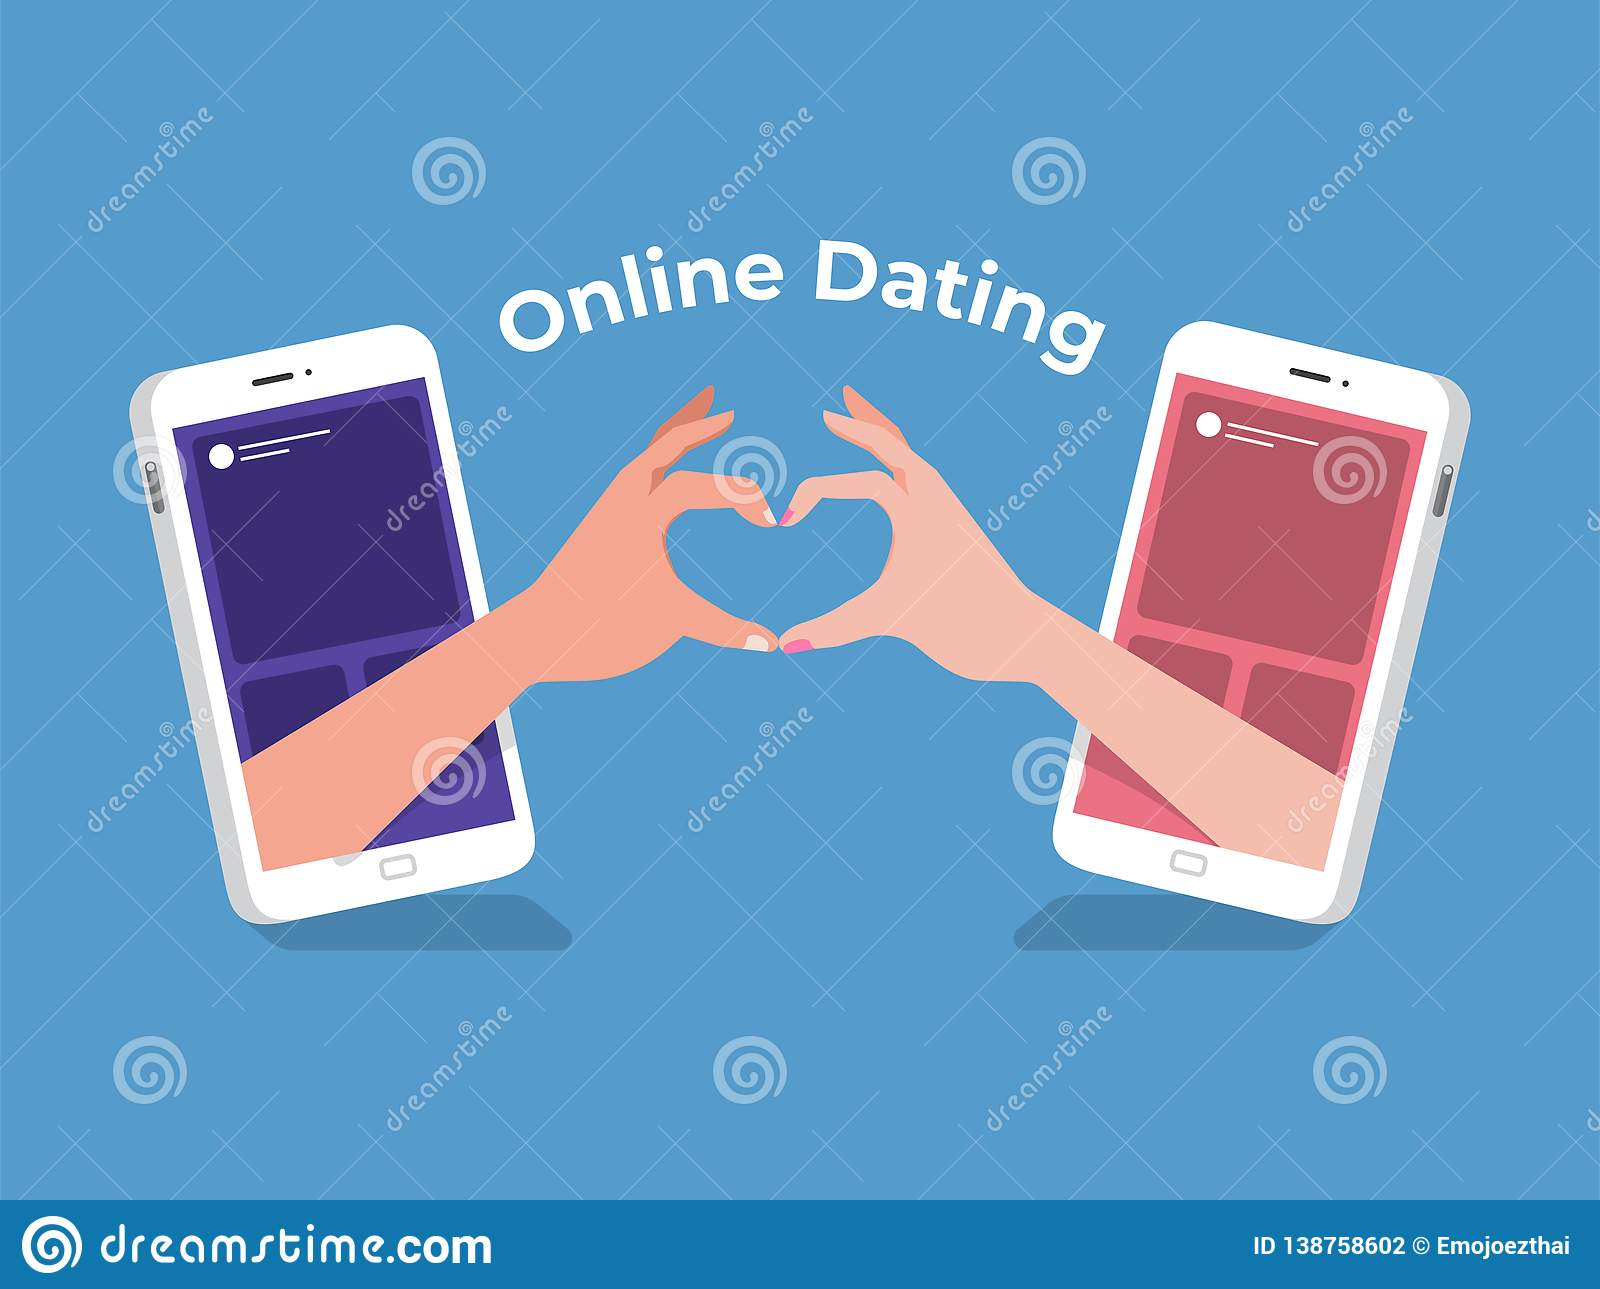 chat dating mobil